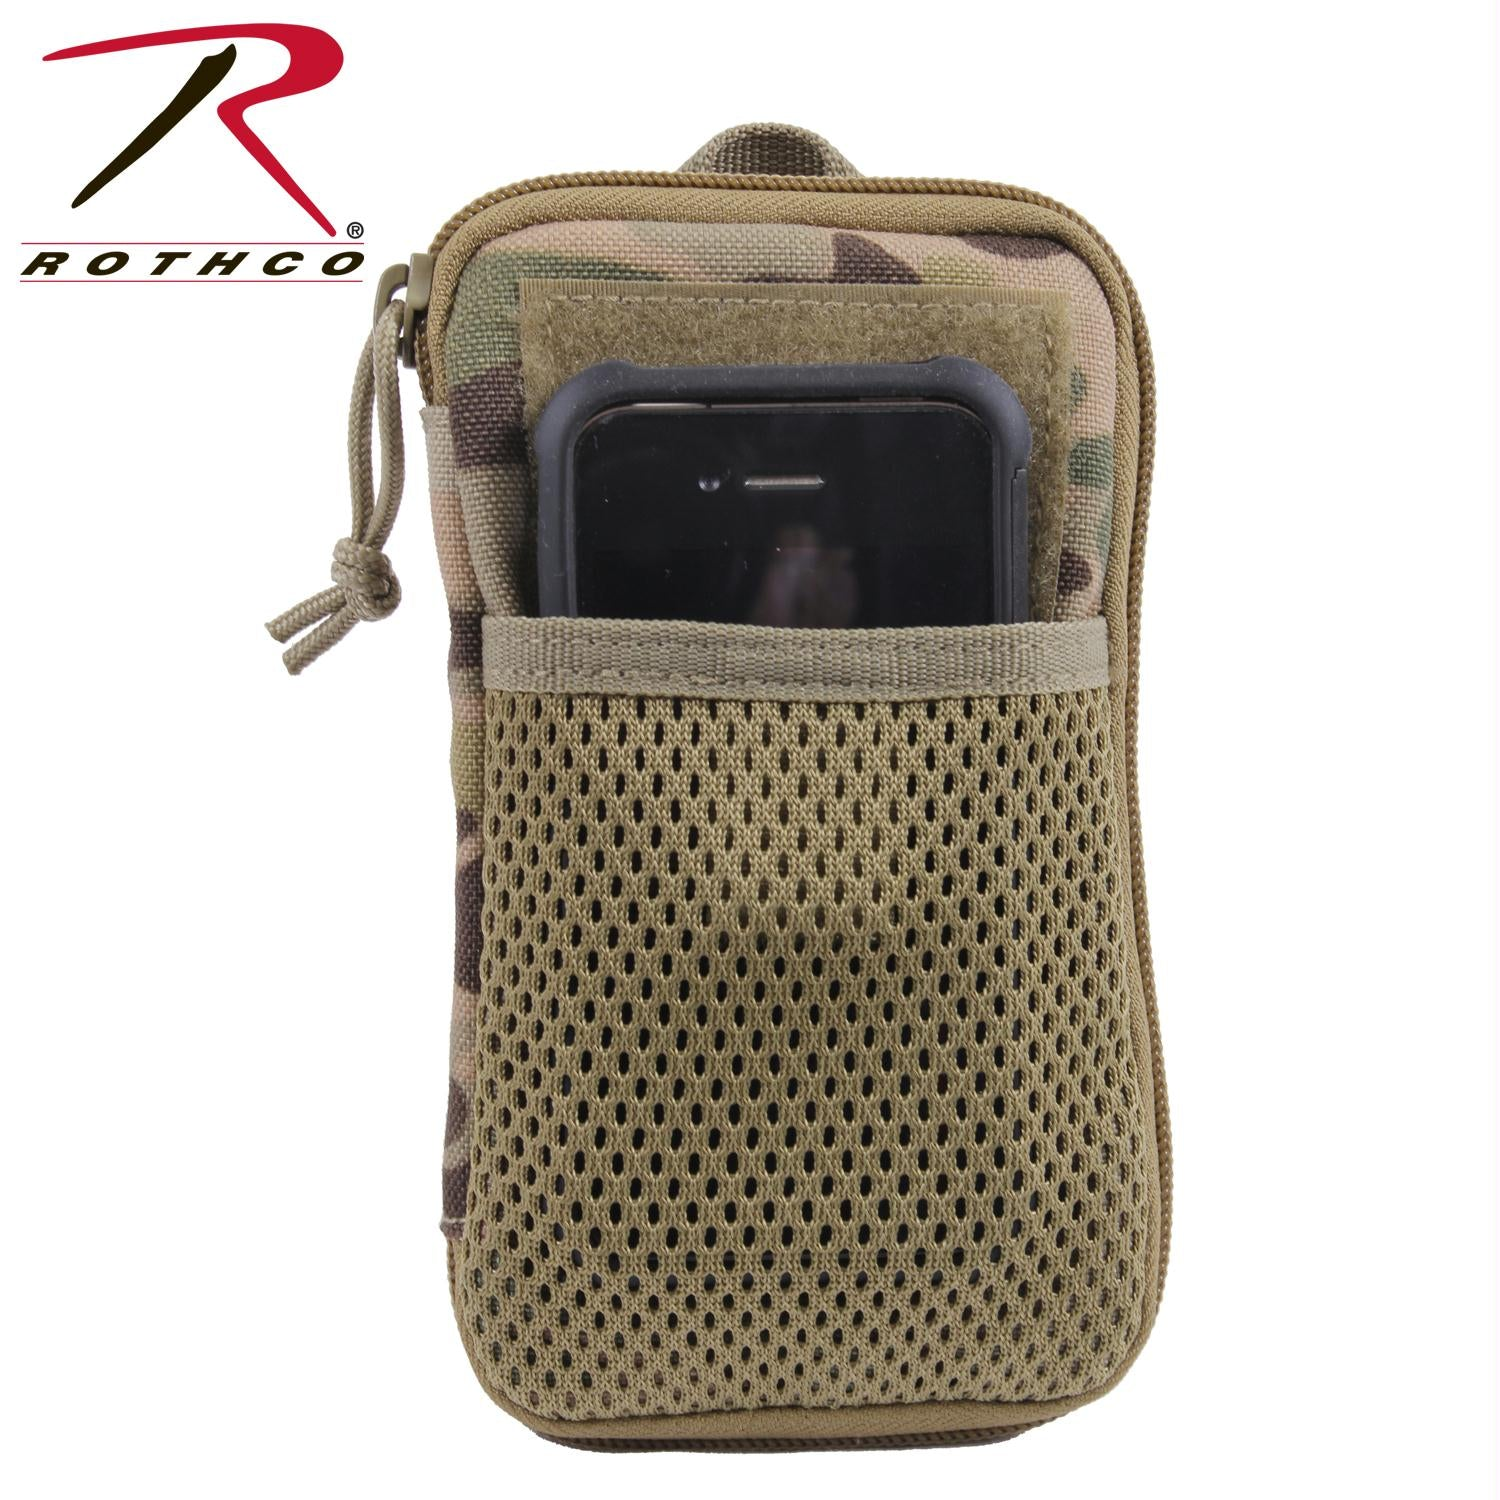 Rothco Tactical MOLLE Wallet - MultiCam